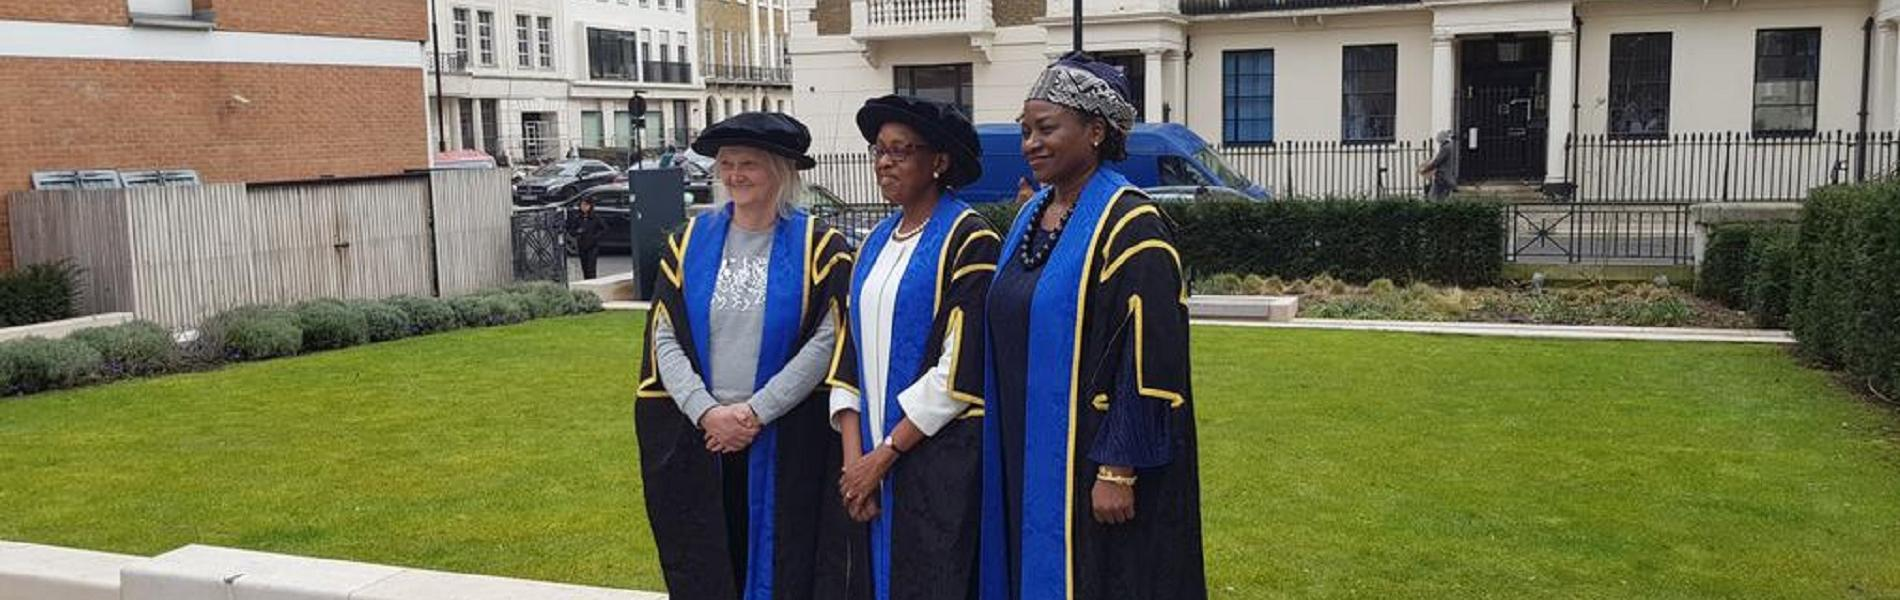 Dr Moeti Matshidiso was awarded the Honorary Fellowship of the London School of Hygiene and Tropical Medicine